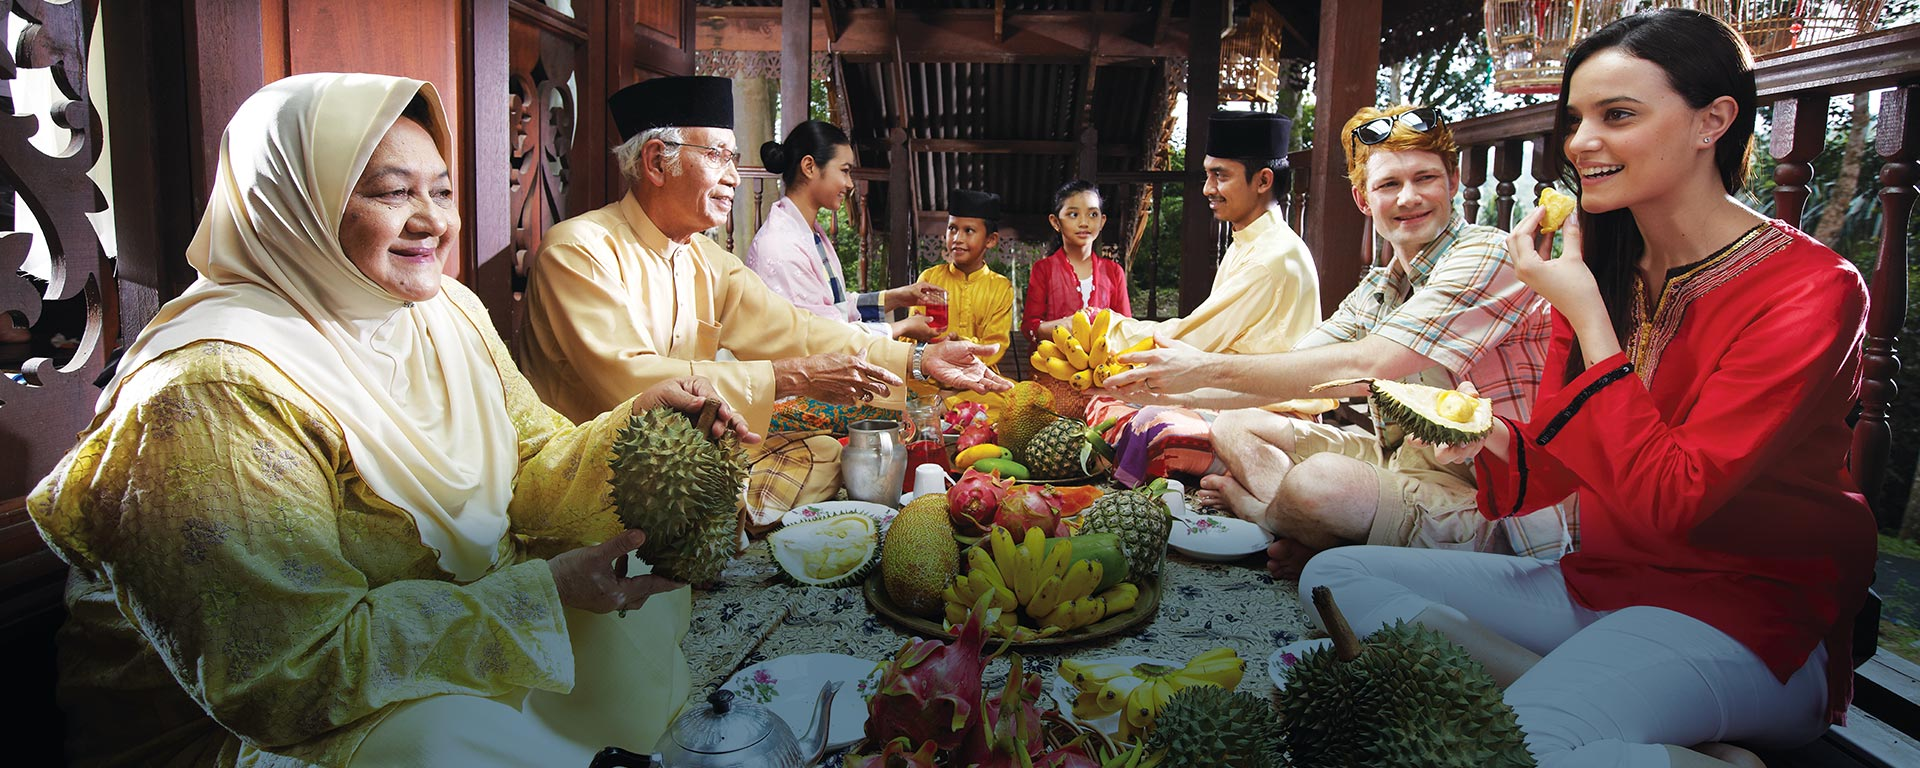 Welcome to the smiles and hearts of the Malaysian people. <div class='action'><a href='http://www.tourism.gov.my/index.php/niche/homestay' class='btn btn-danger btn-lg'>Join Us Now!</a></div>